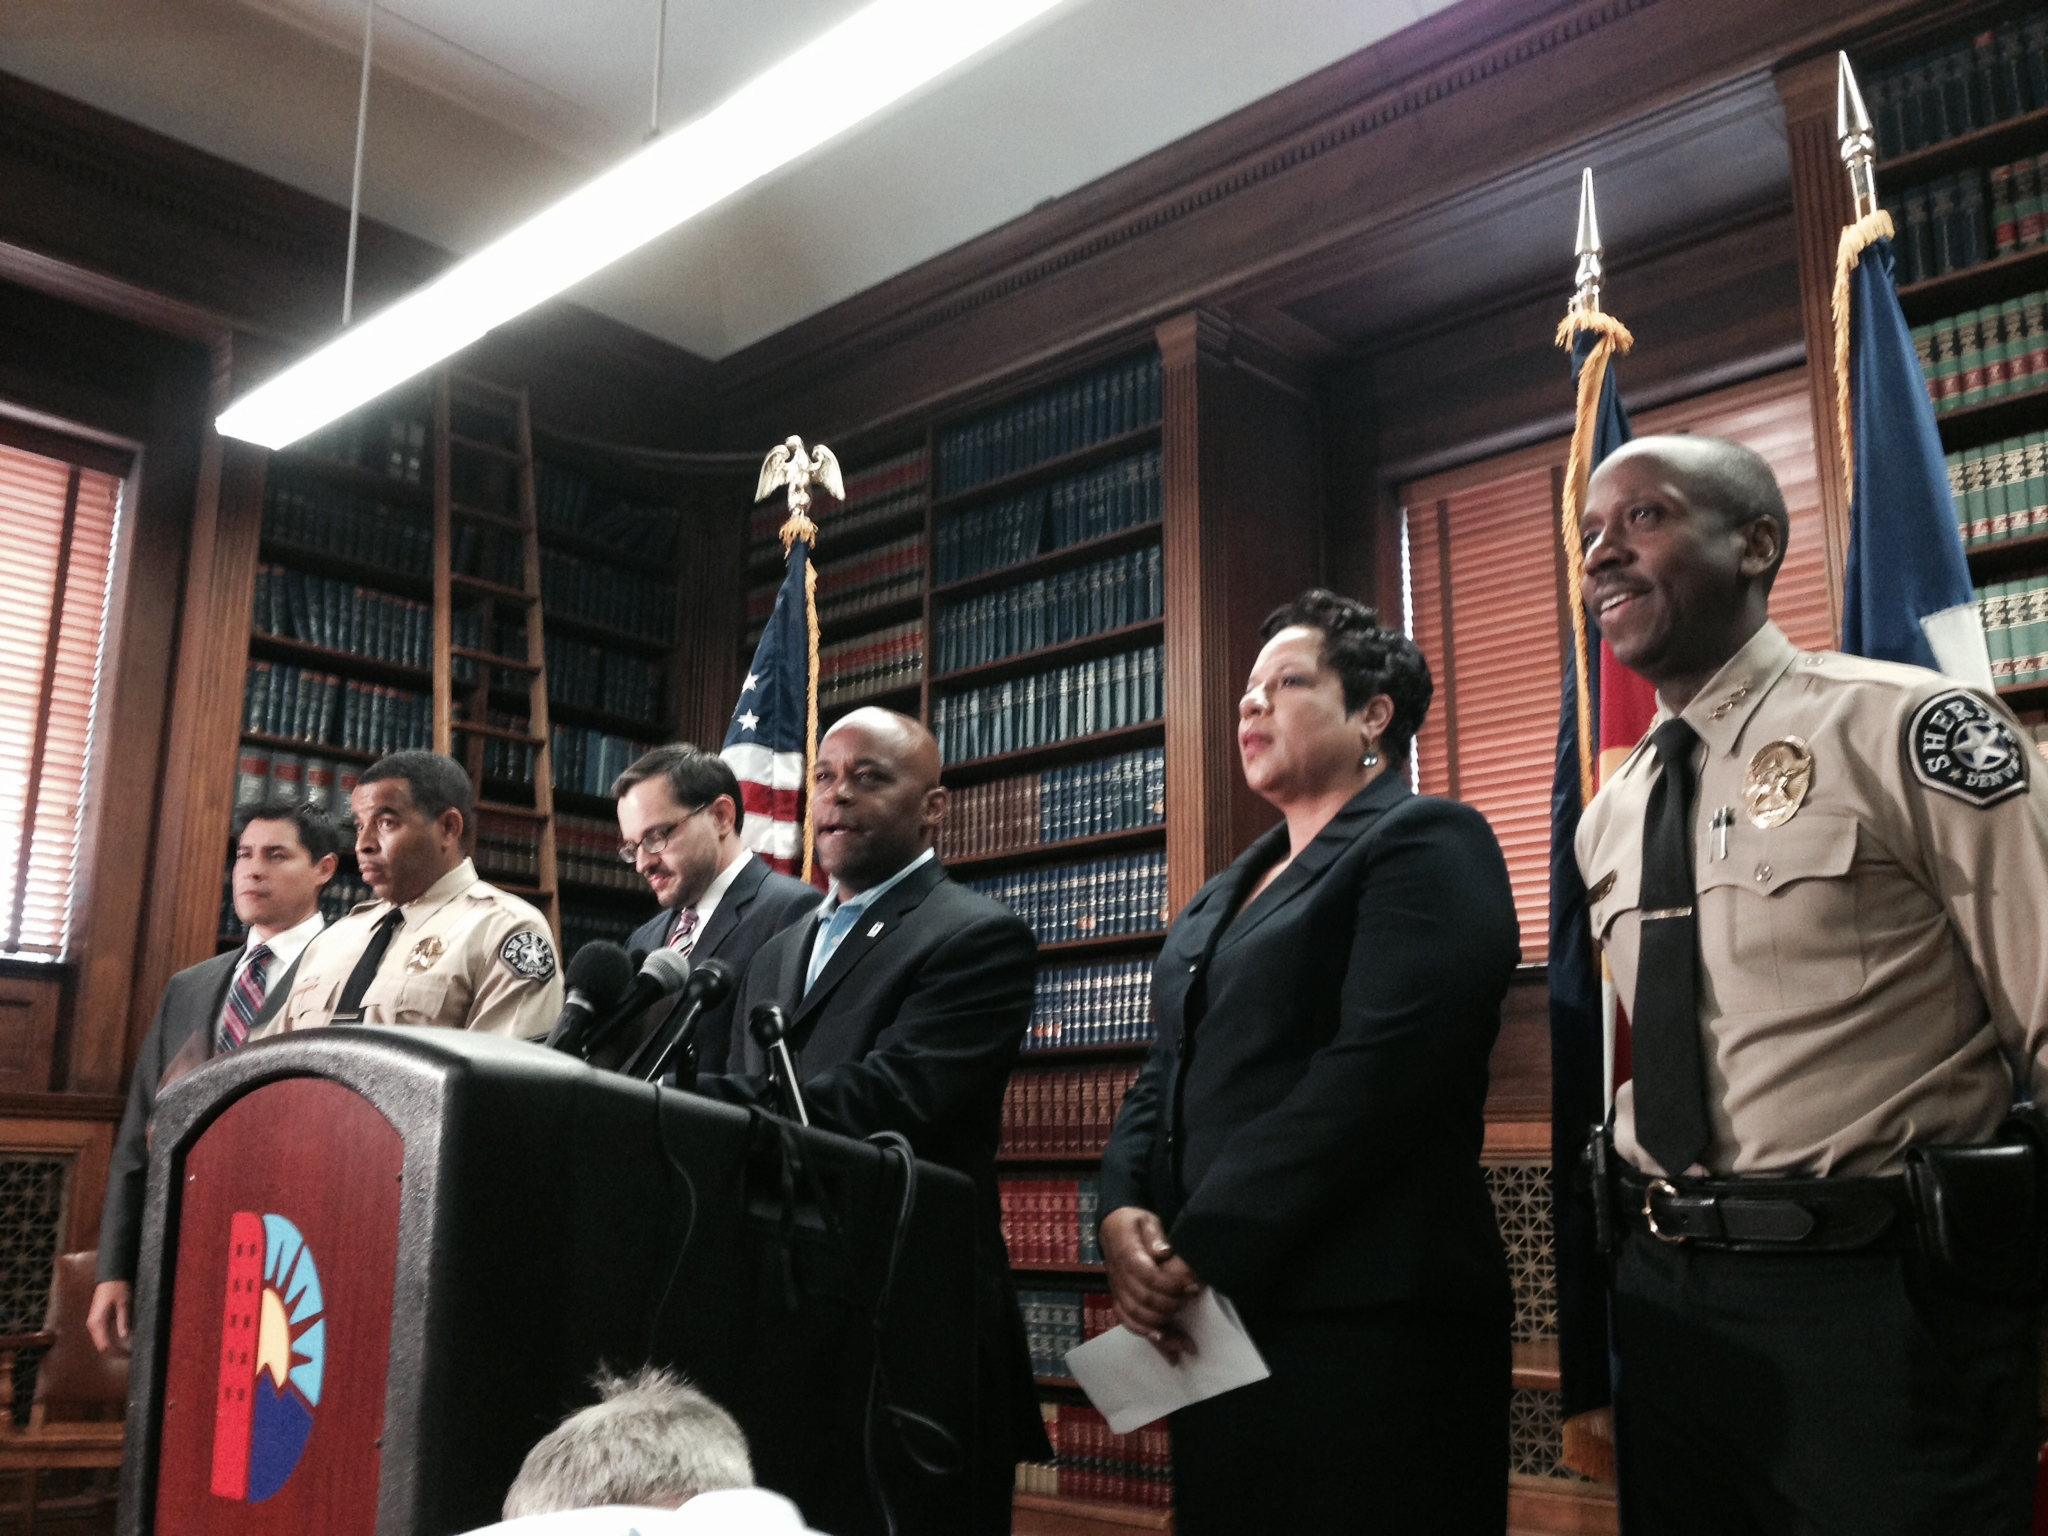 """<p>Flanked by city officials, Denver Mayor Michael B. Hancock, center, announces the resignation of Sheriff<span style=""""line-height: 1.66667em;"""">Gary Wilson, at far right, on Monday, July 21, 2014.</span></p>"""